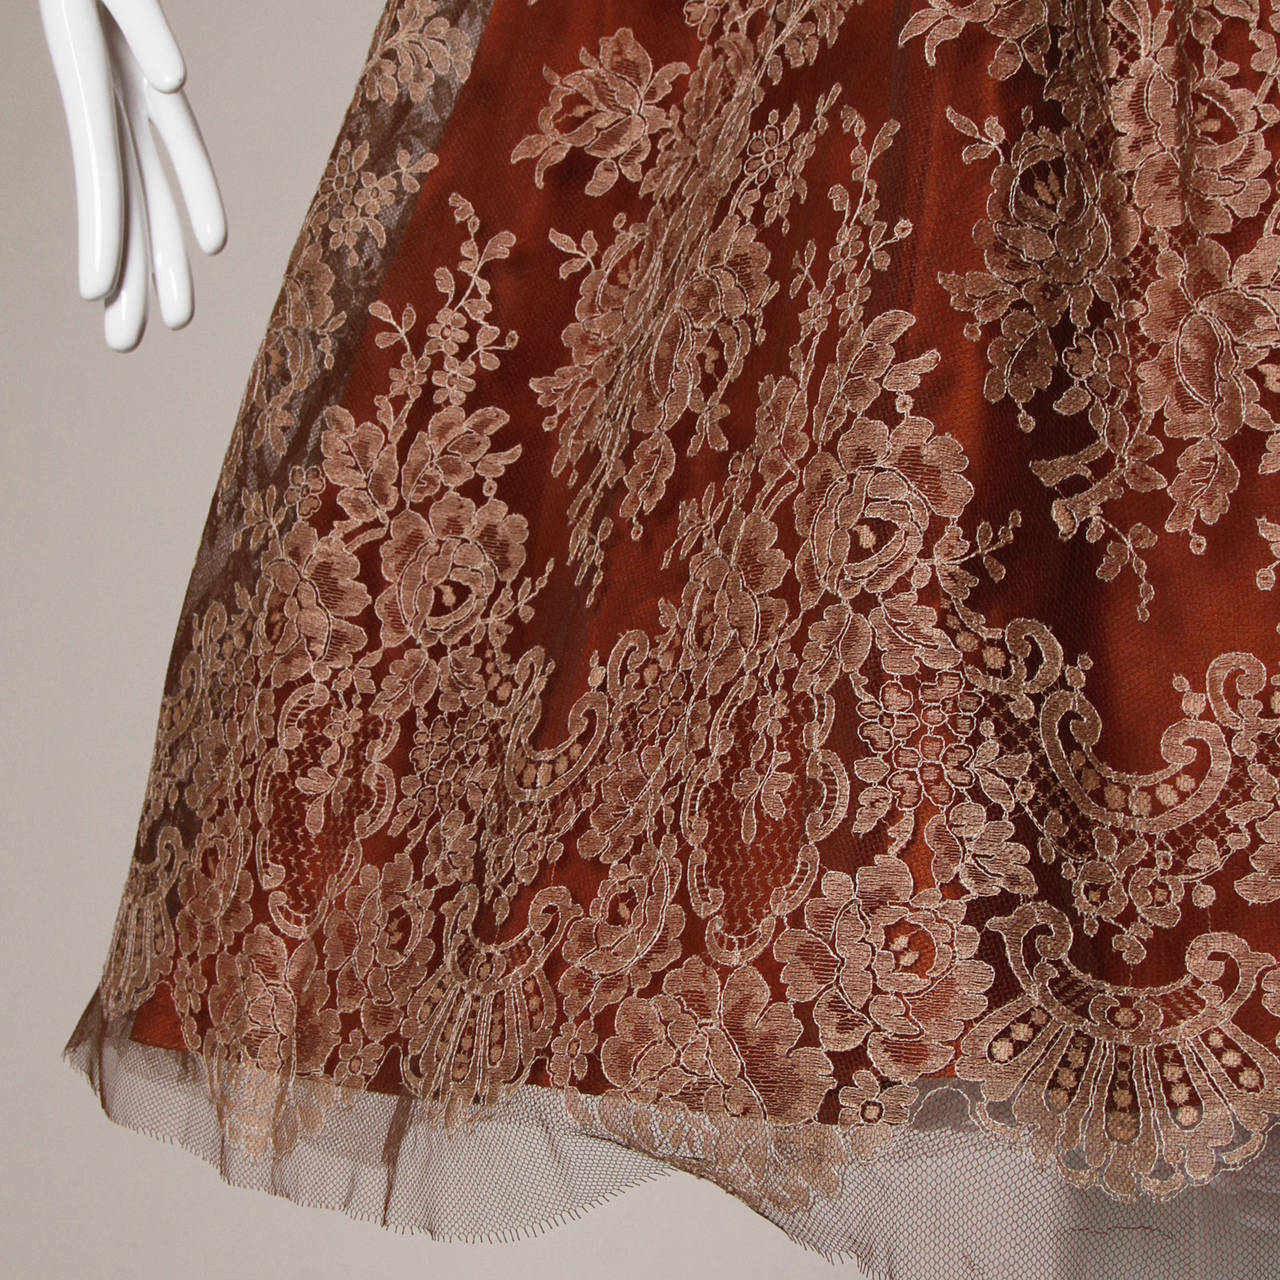 Dreamy 1950s Brown Tulle Chantilly Lace Cocktail Dress 9